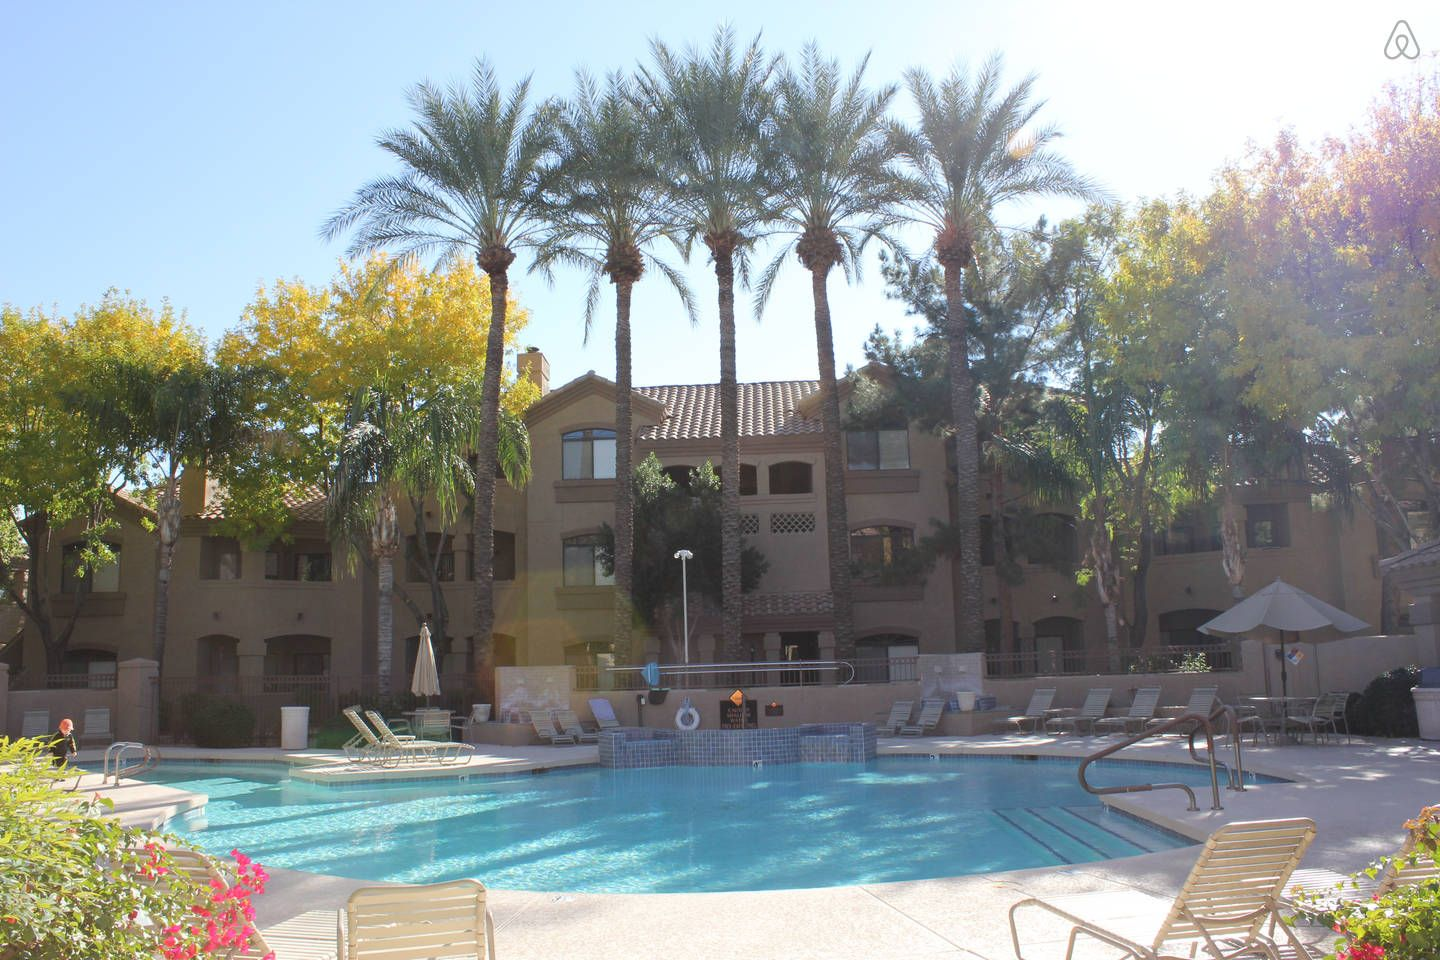 Beautiful Scottsdale Condominium - vacation rental in ...